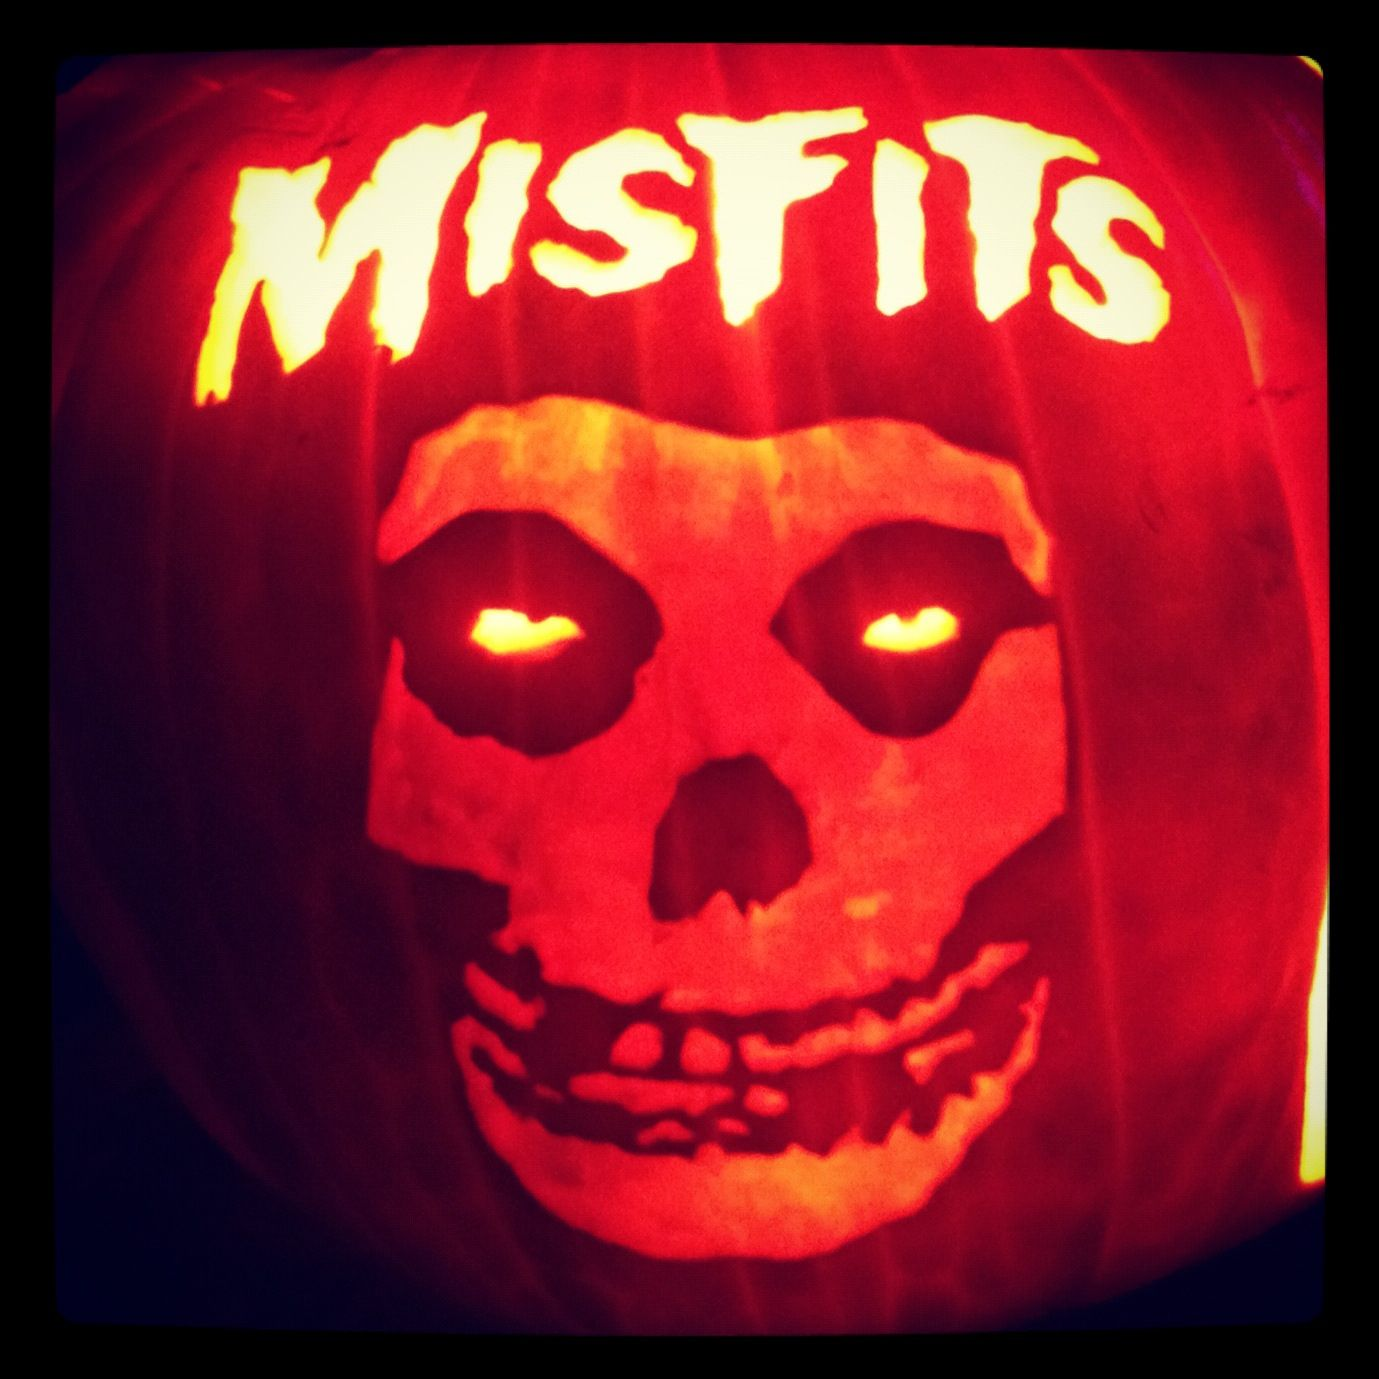 Misfits Carved On A Real Pumpkin We Grew In Our Garden Used A